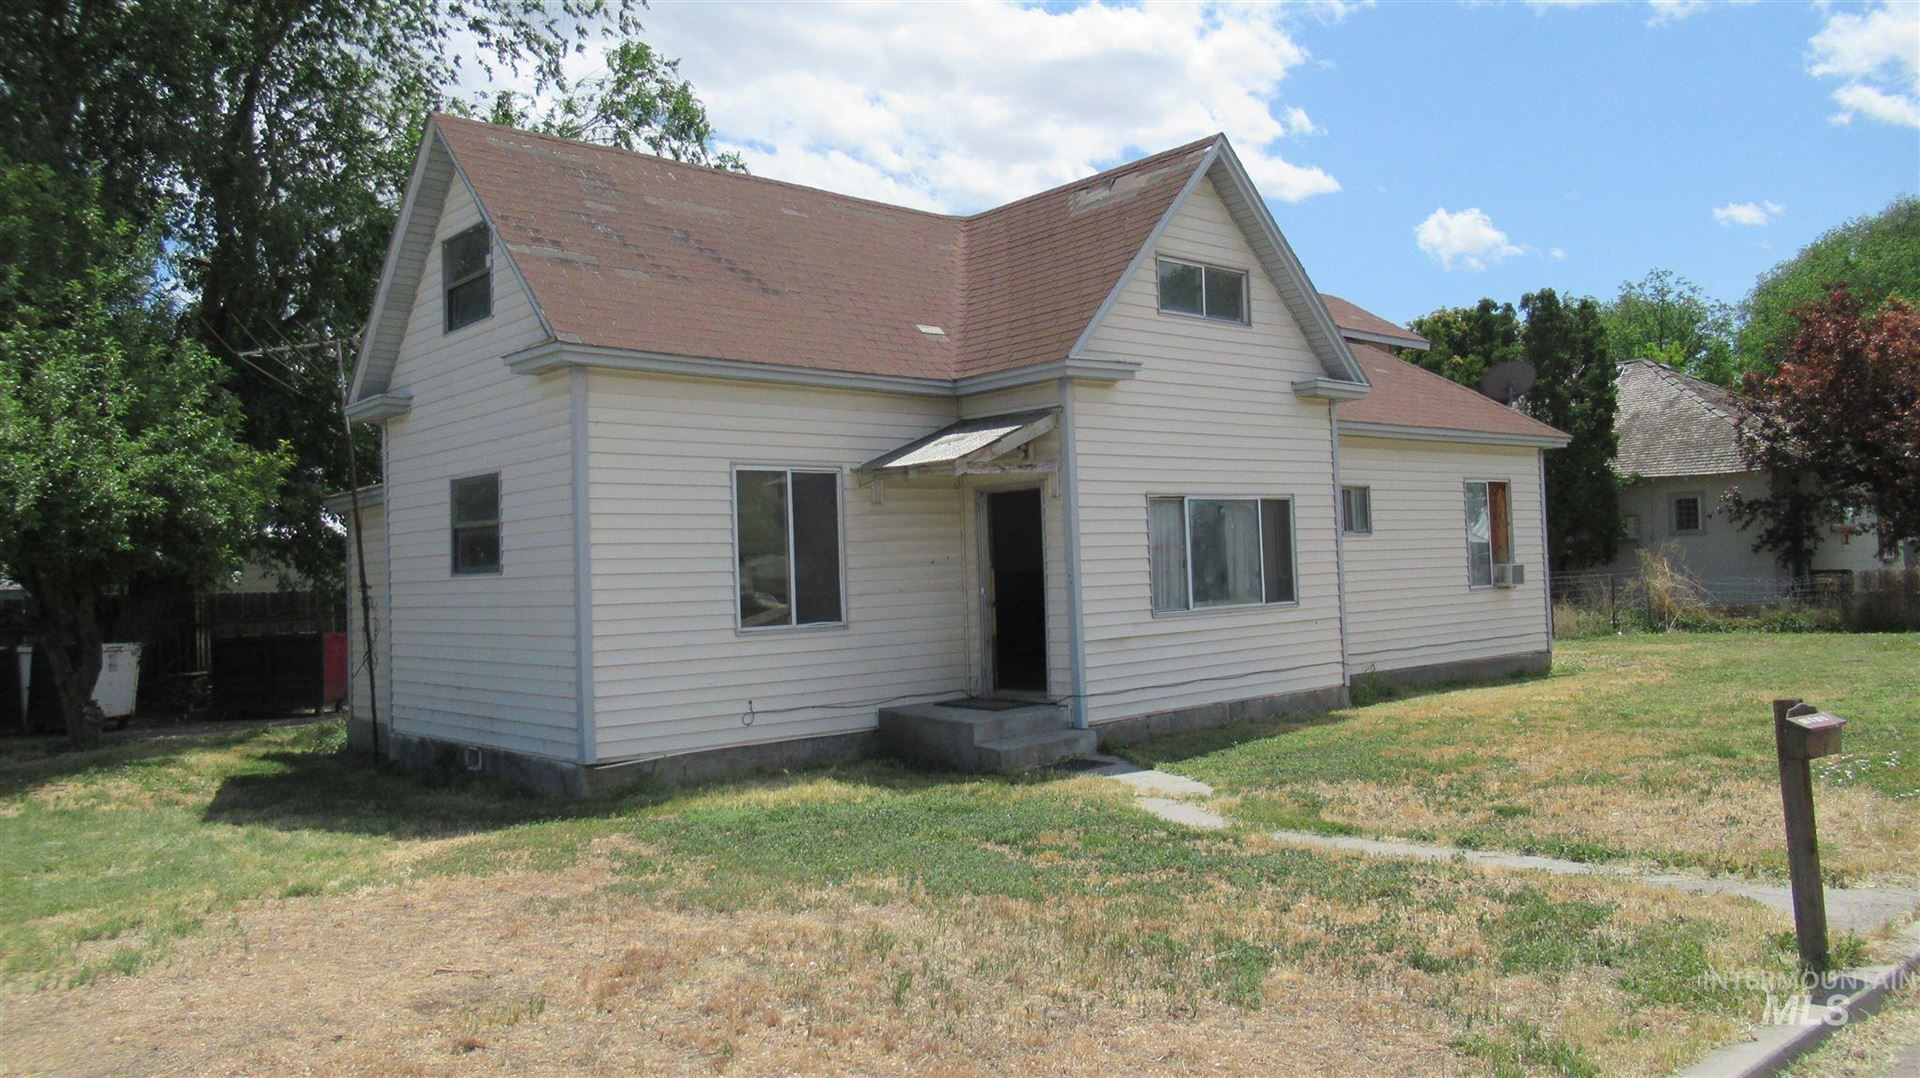 Photo of 414 W Main, Vale, OR 97918 (MLS # 98807205)